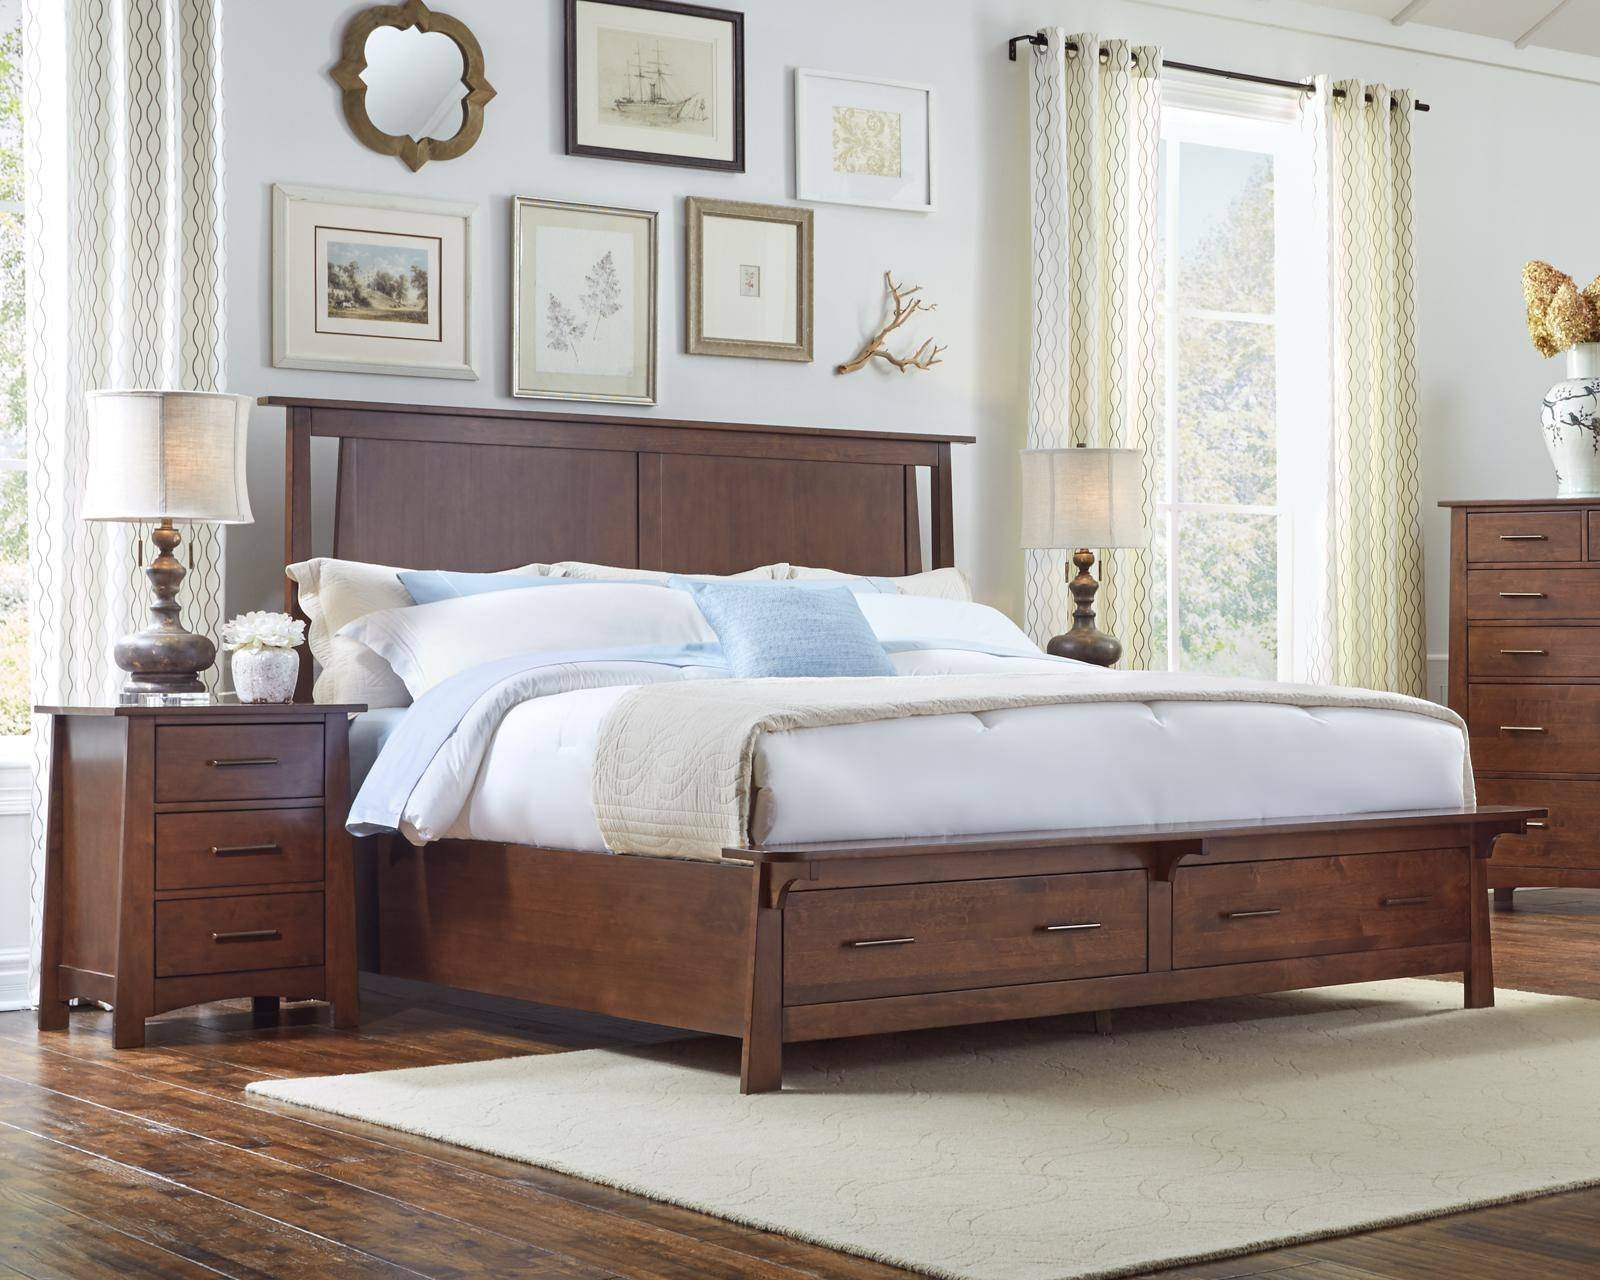 Low Price Bedroom Set Lovely Modern King Storage Bedroom Set 5pcs Sumatra Brown sodwb5131